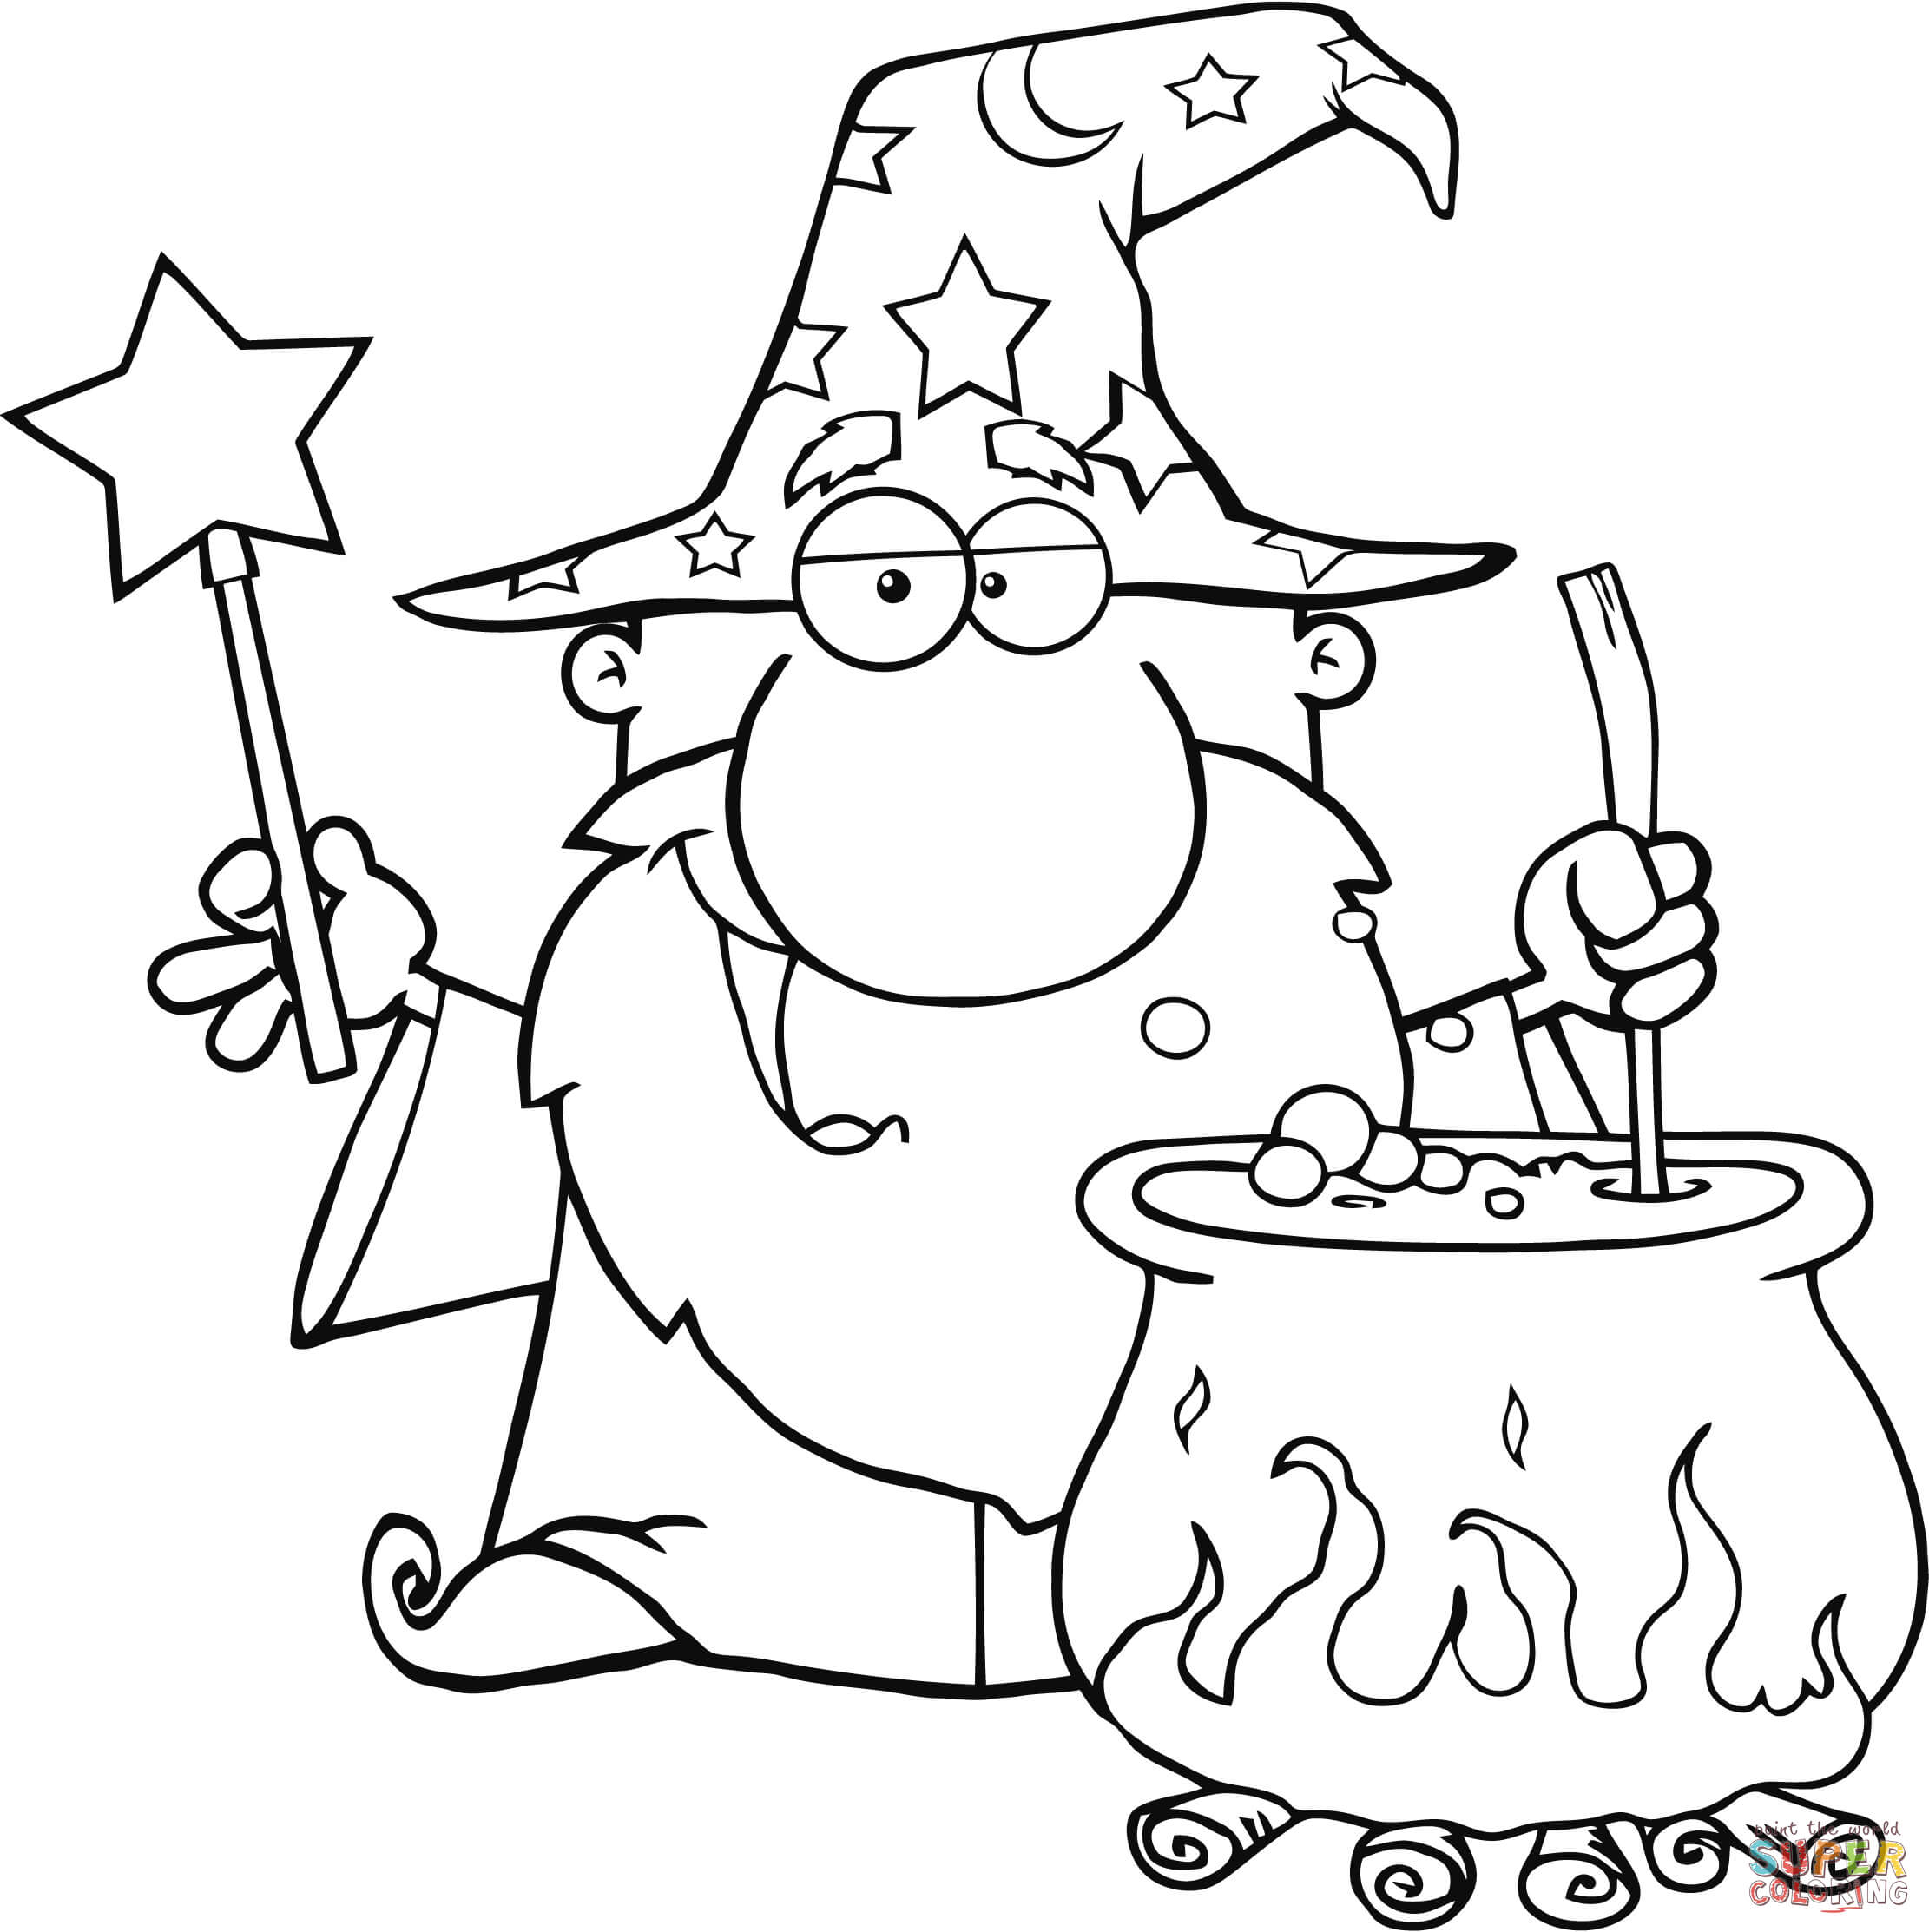 Wizard coloring #19, Download drawings